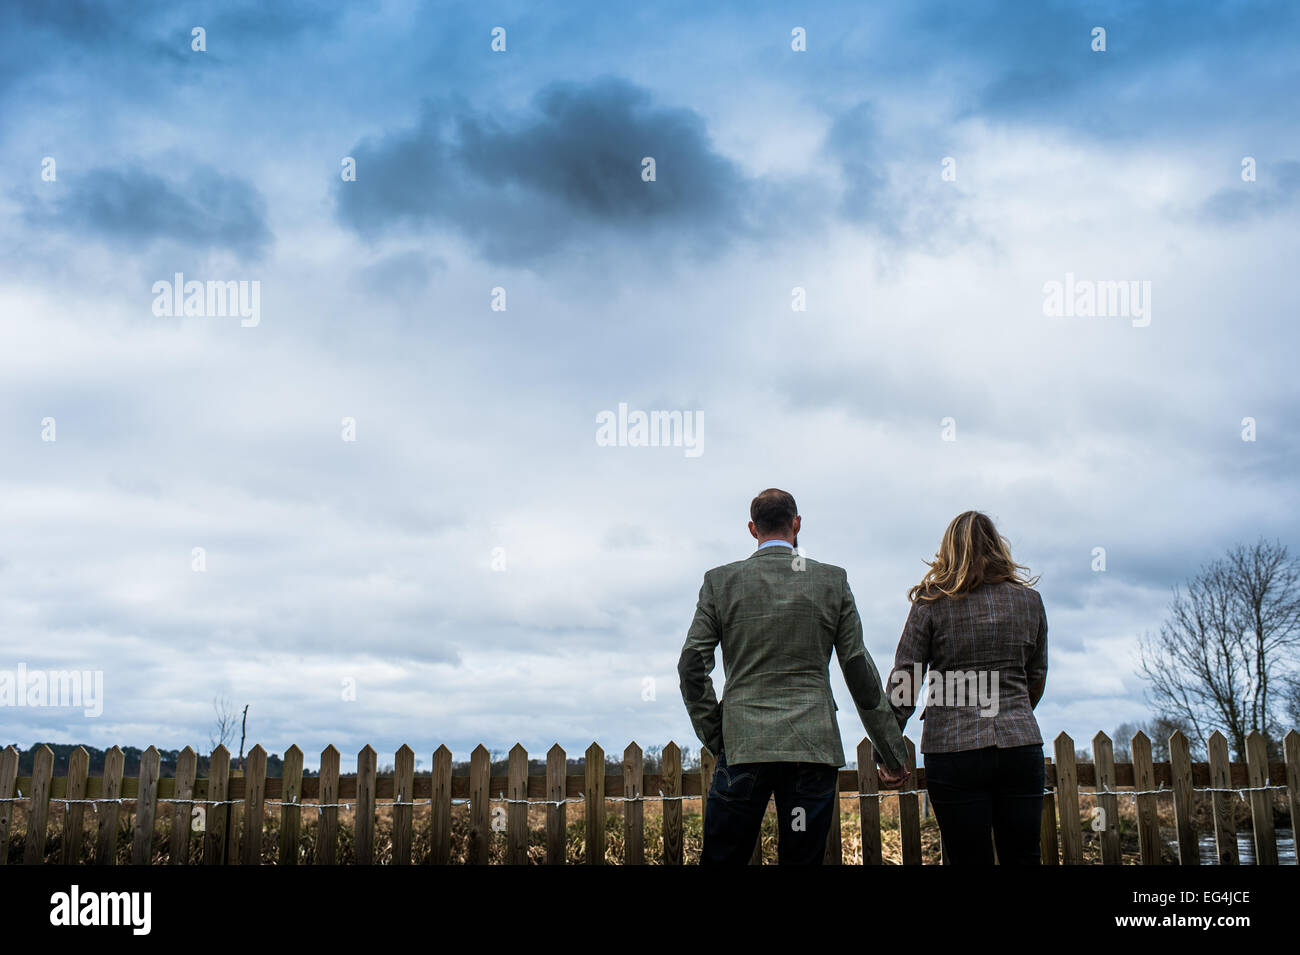 Couple Holding Hands Silhouette Stock Photos & Couple ...  Couple Holding ...